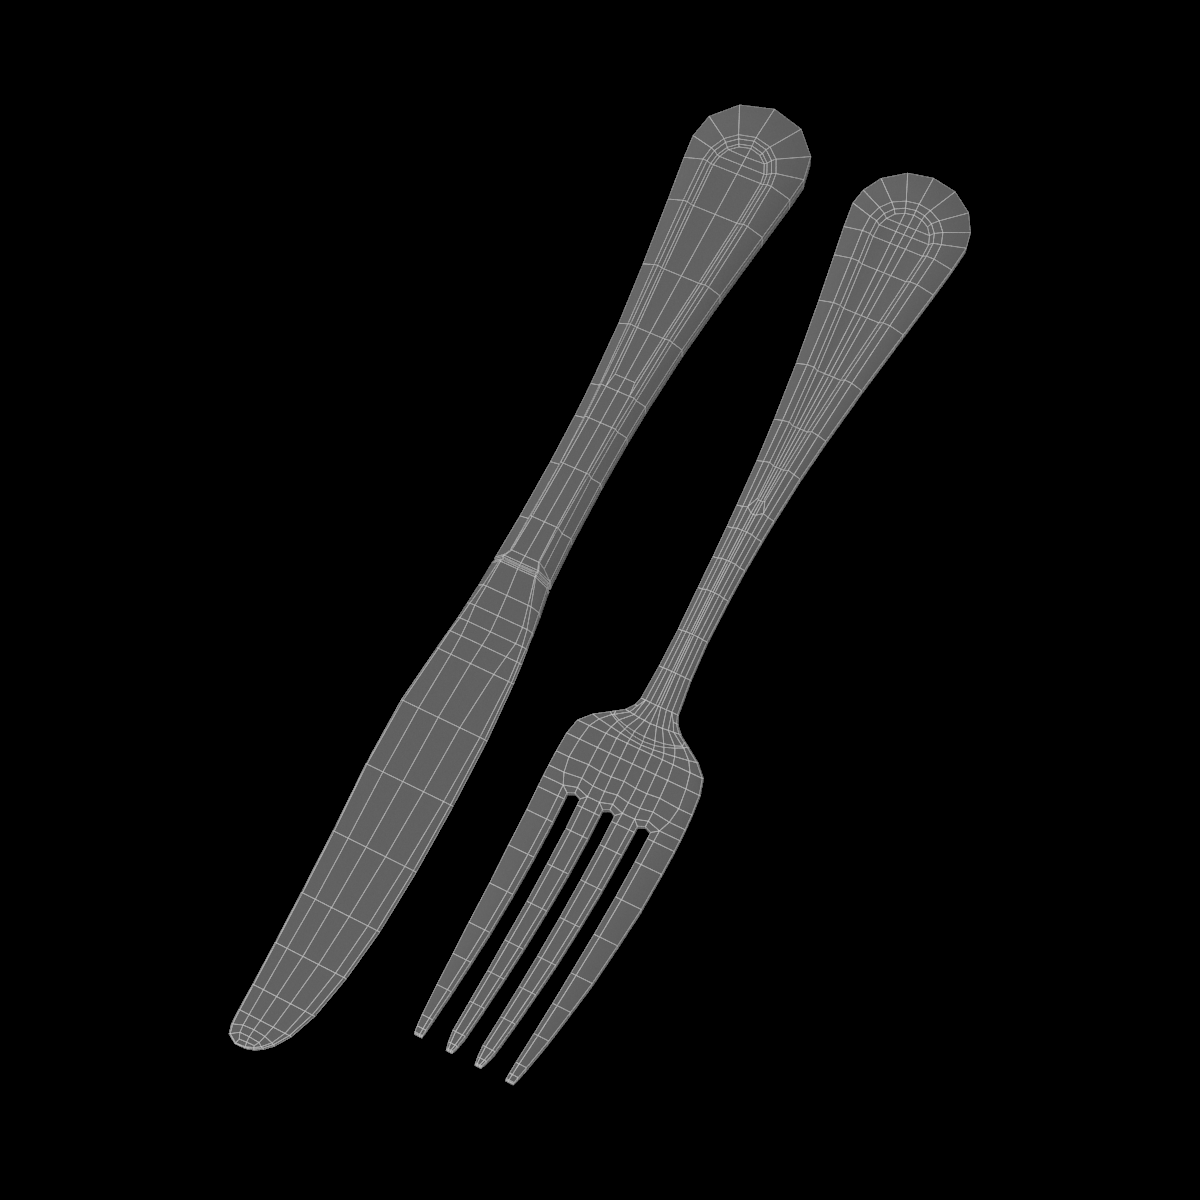 table dinner knife and fork classic cutlery 3d model 3ds max fbx c4d ma mb obj 284036